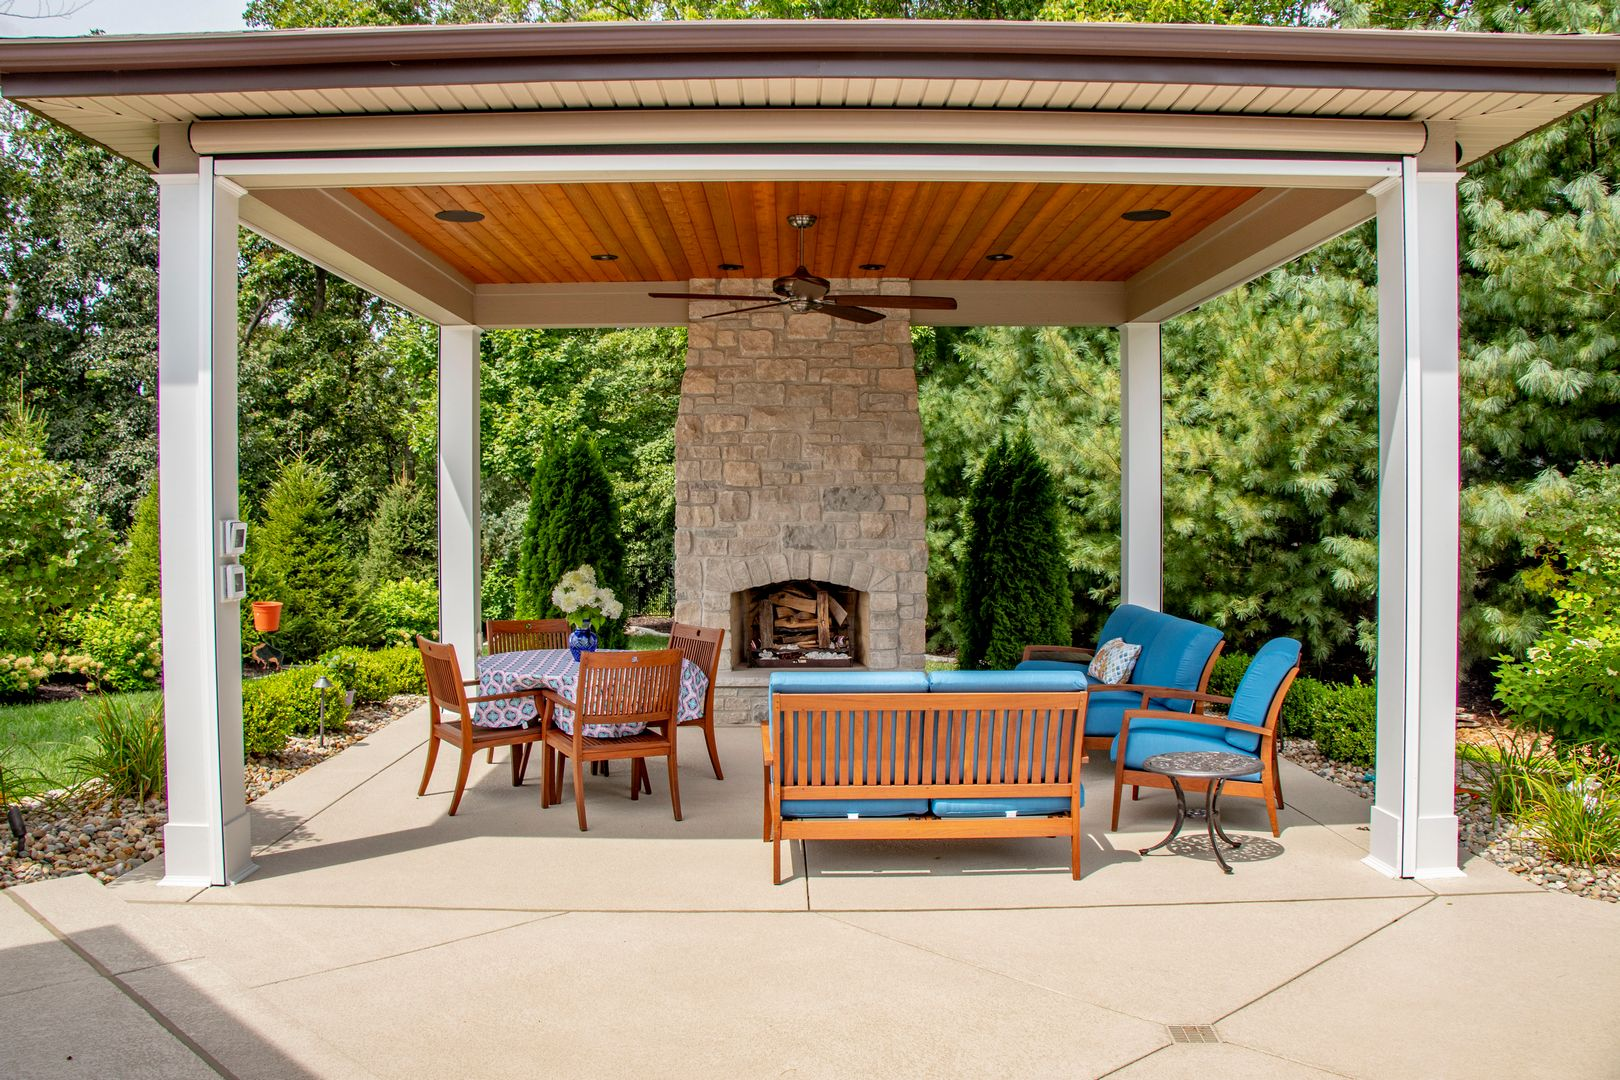 Comfortable seating in a fully retractable screen room that includes a fireplace